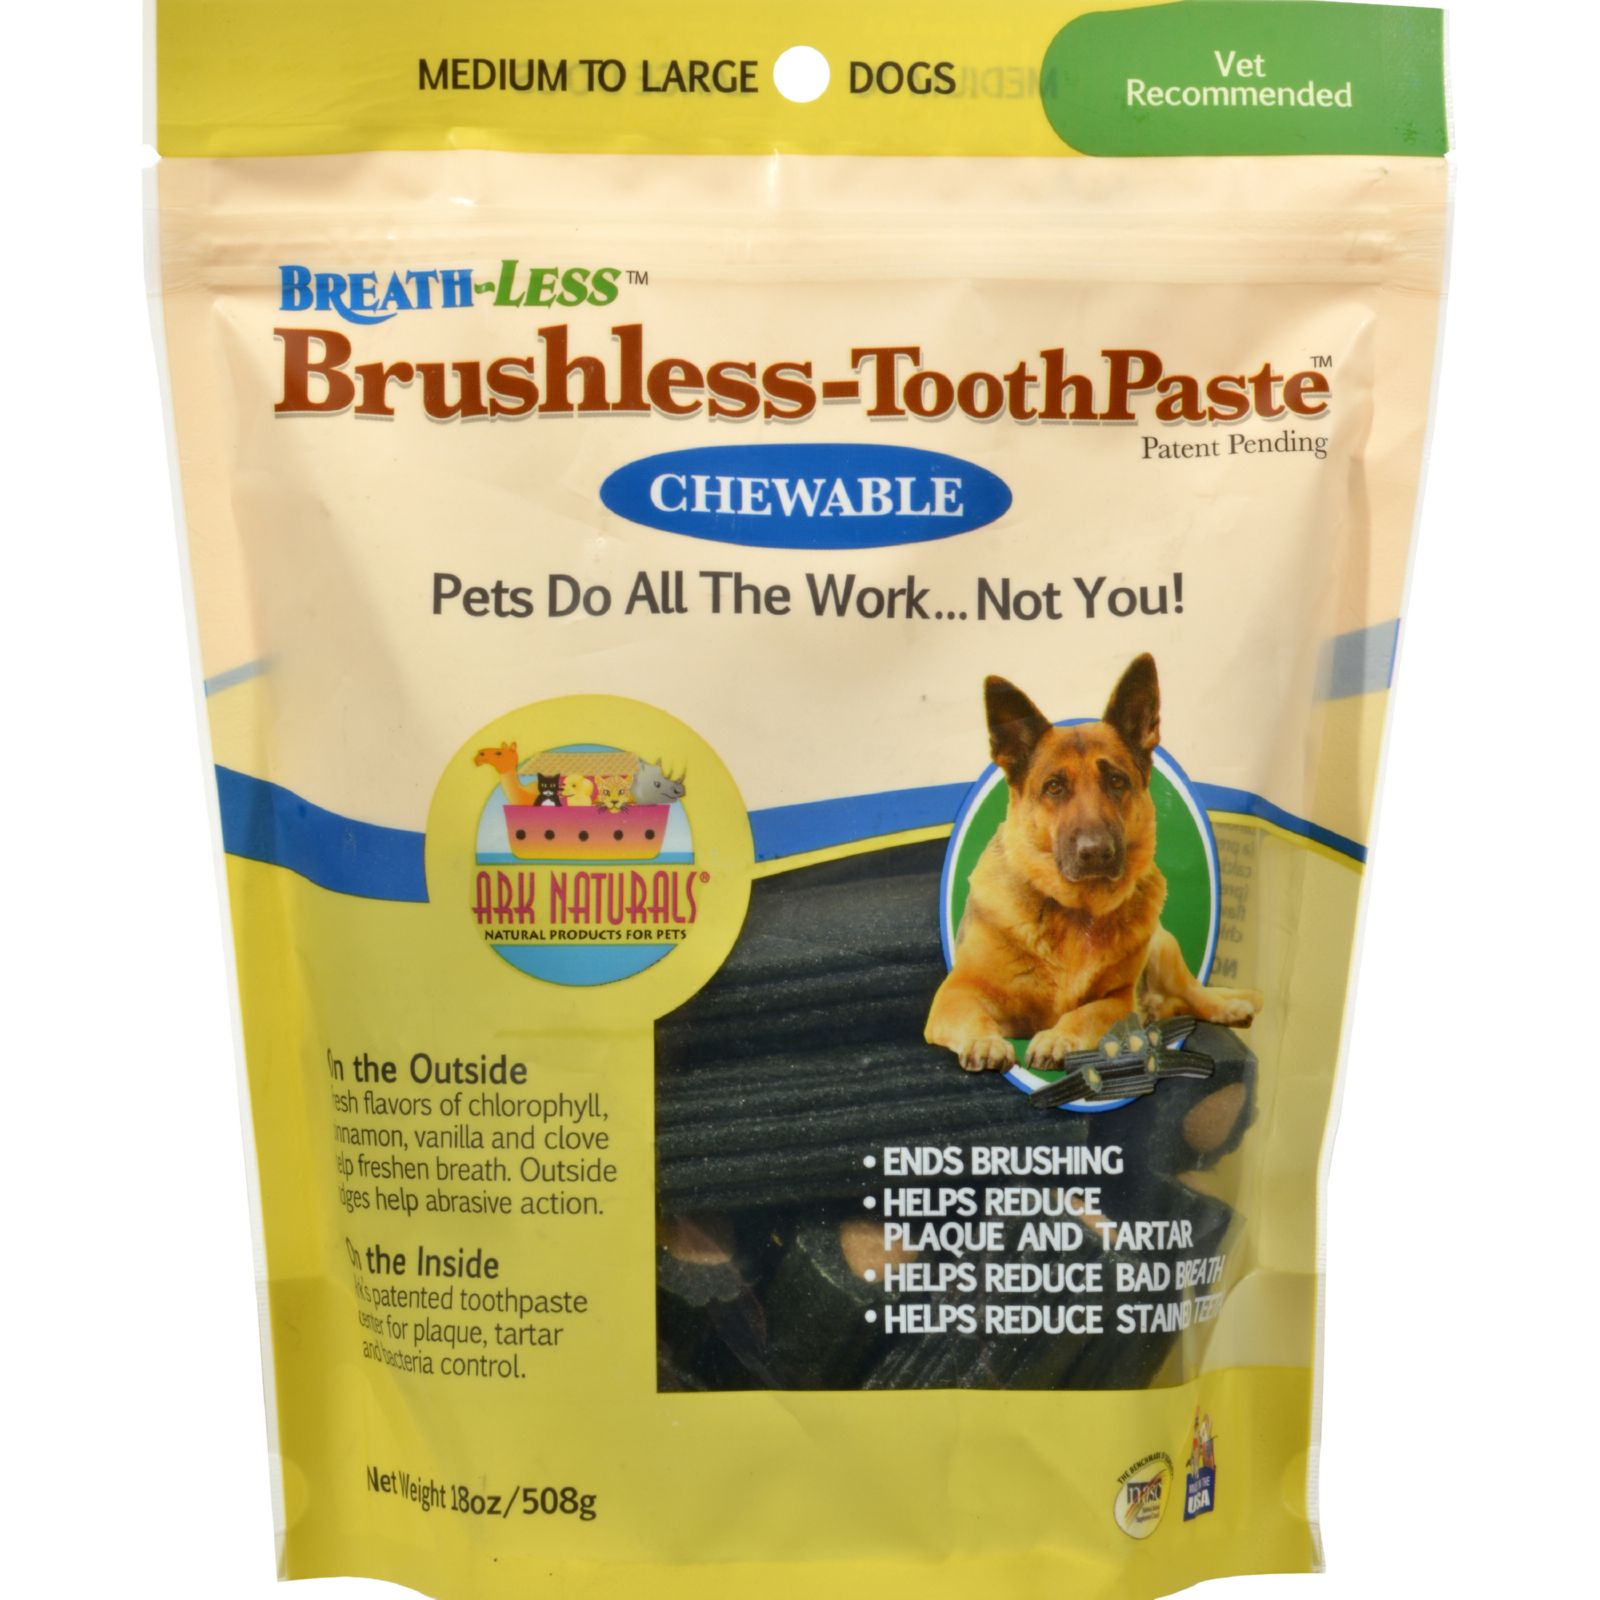 Ark Naturals BREATH-LESS Brushless-Toothpaste, M/L, 18 oz.